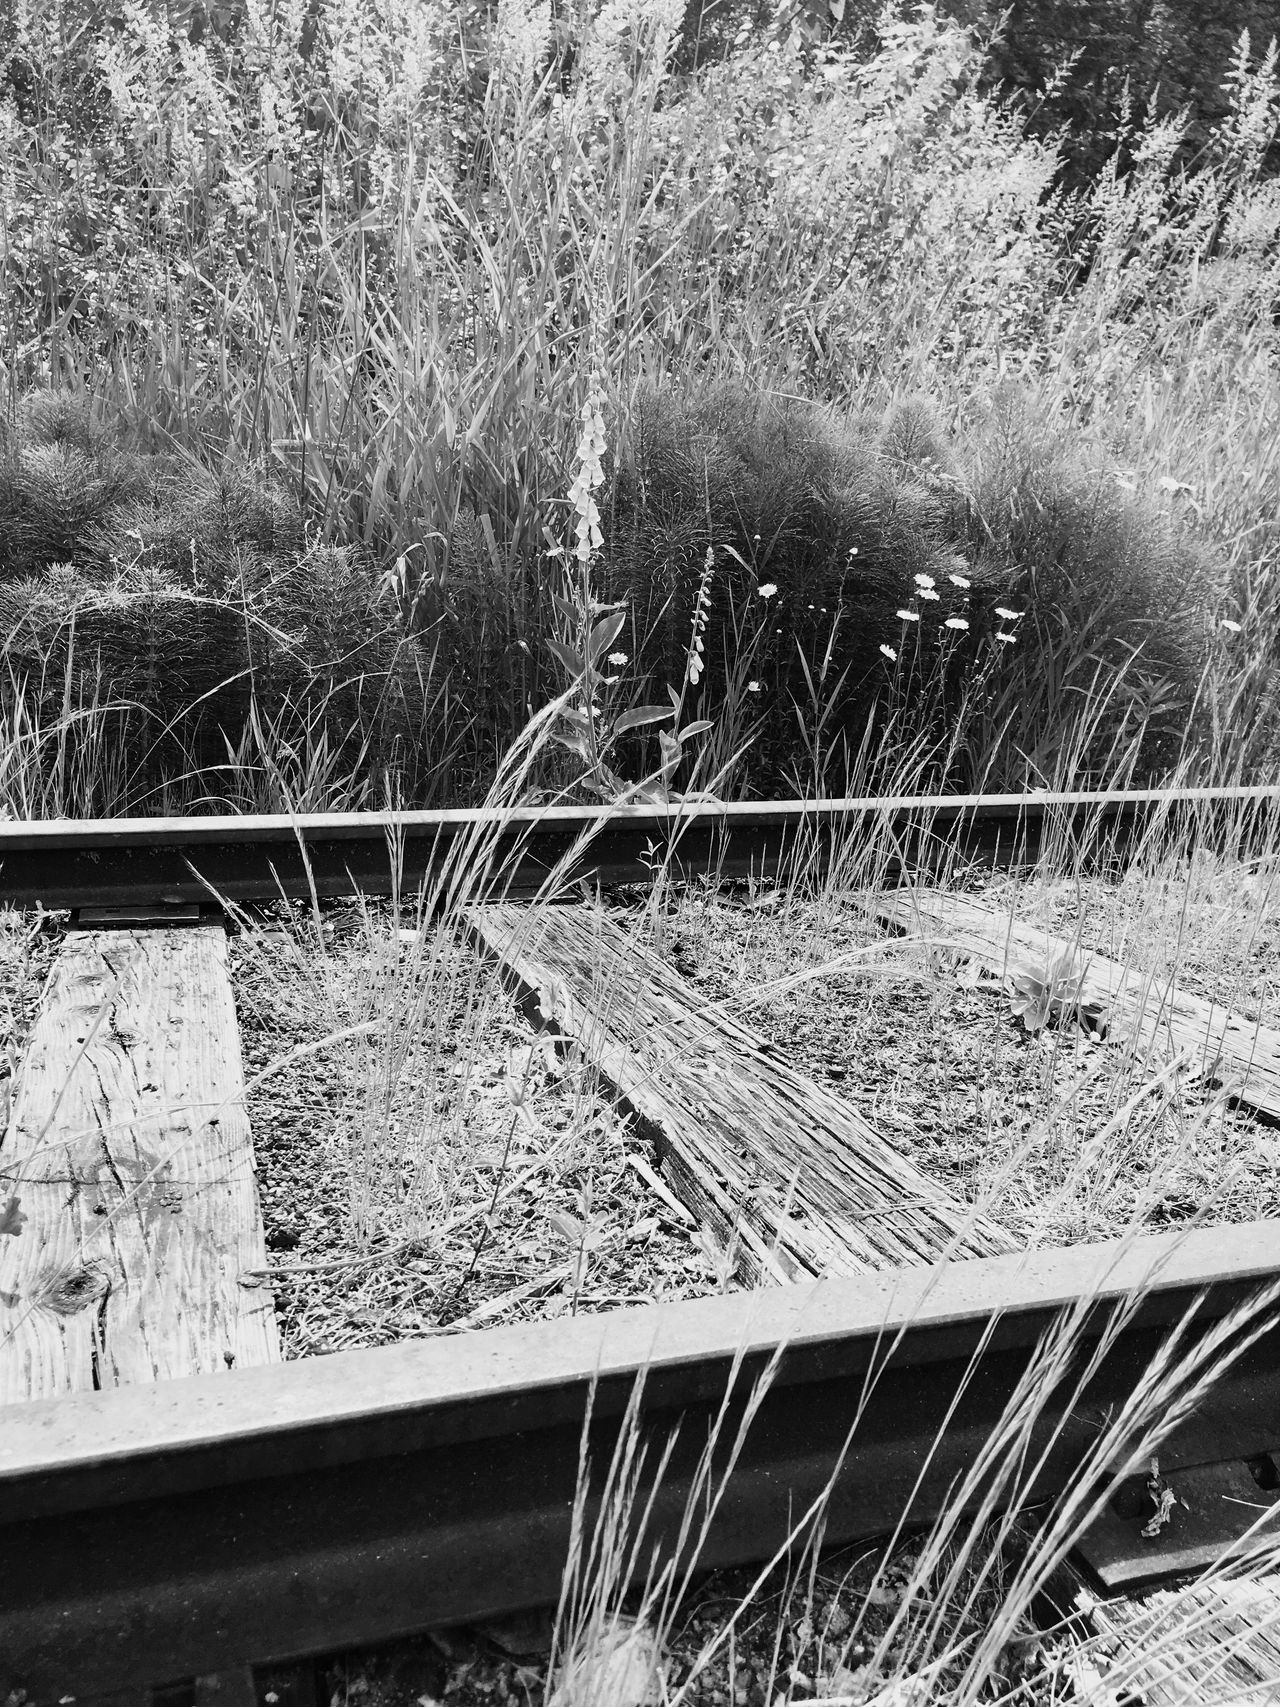 No People Day Plant Outdoors Nature Growth Grass Tree Railroad Track Field Nature Blackandwhite Plant Flower Landscape